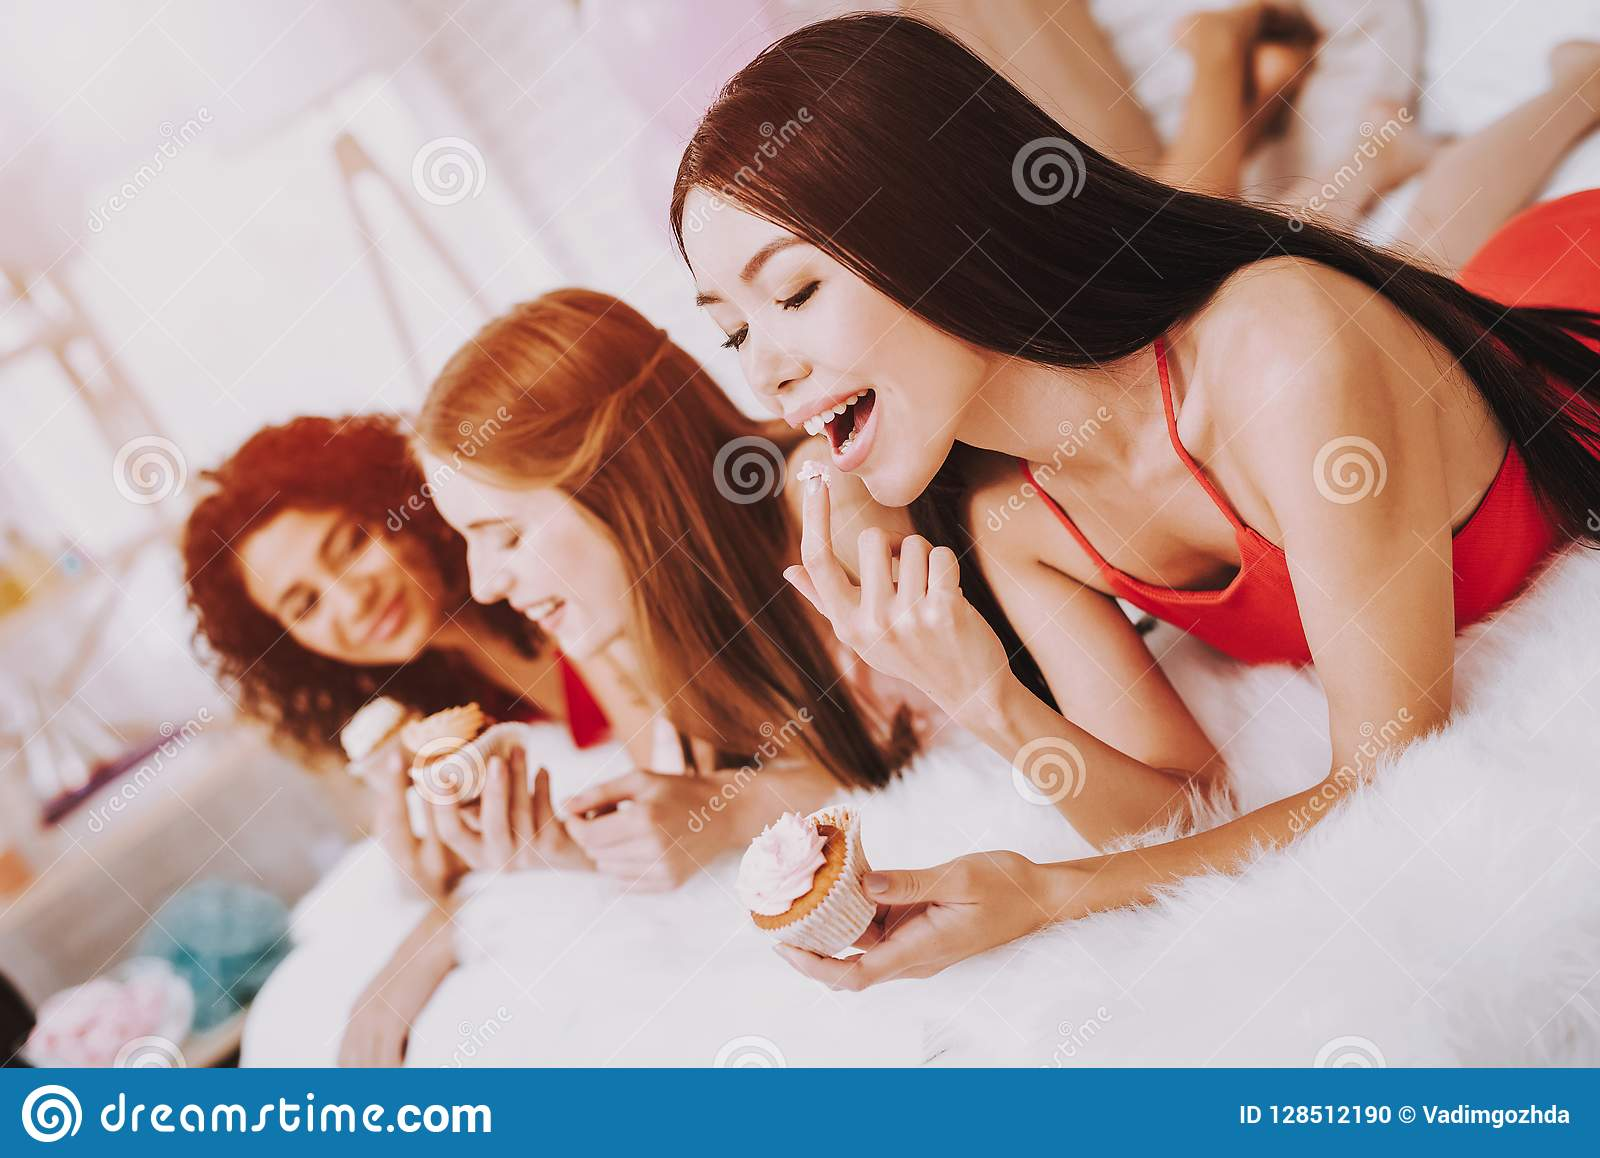 Women in Red Dresses Lying on Bed Eating Cupcakes.